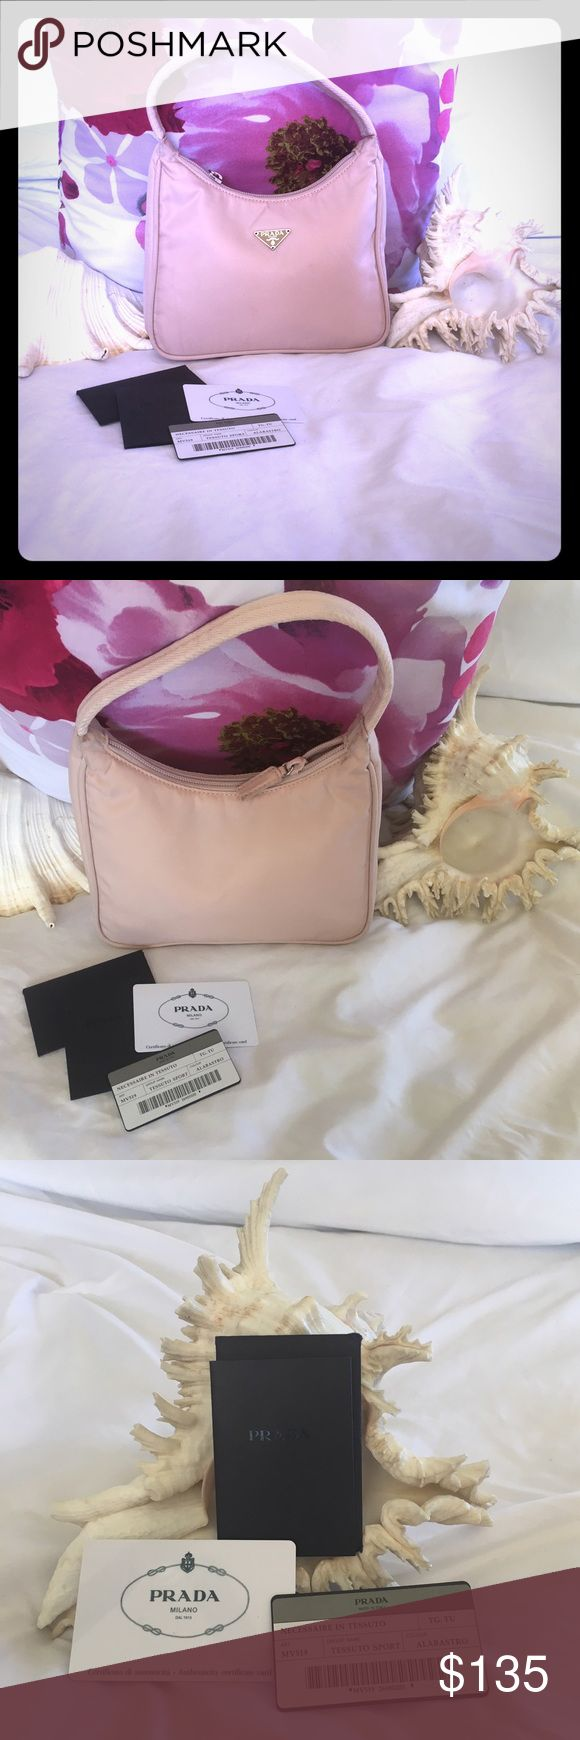 """🆕Listing Authentic Prada Light Pink Purse 👛 Beautiful Prada purse kept in good condition, no rips or wear with authentic certification. Ready to sell with reasonable offer💗💗💗Authenticity Card Included   Country of Make: Italy  Model Number: MV519  Handbag Approx. Measurements: 8""""Length x 2.5""""Depth x 6""""Height Handle Approx. Length: 11""""  Color: Light Pink / Silver Hardware Prada Bags Mini Bags"""